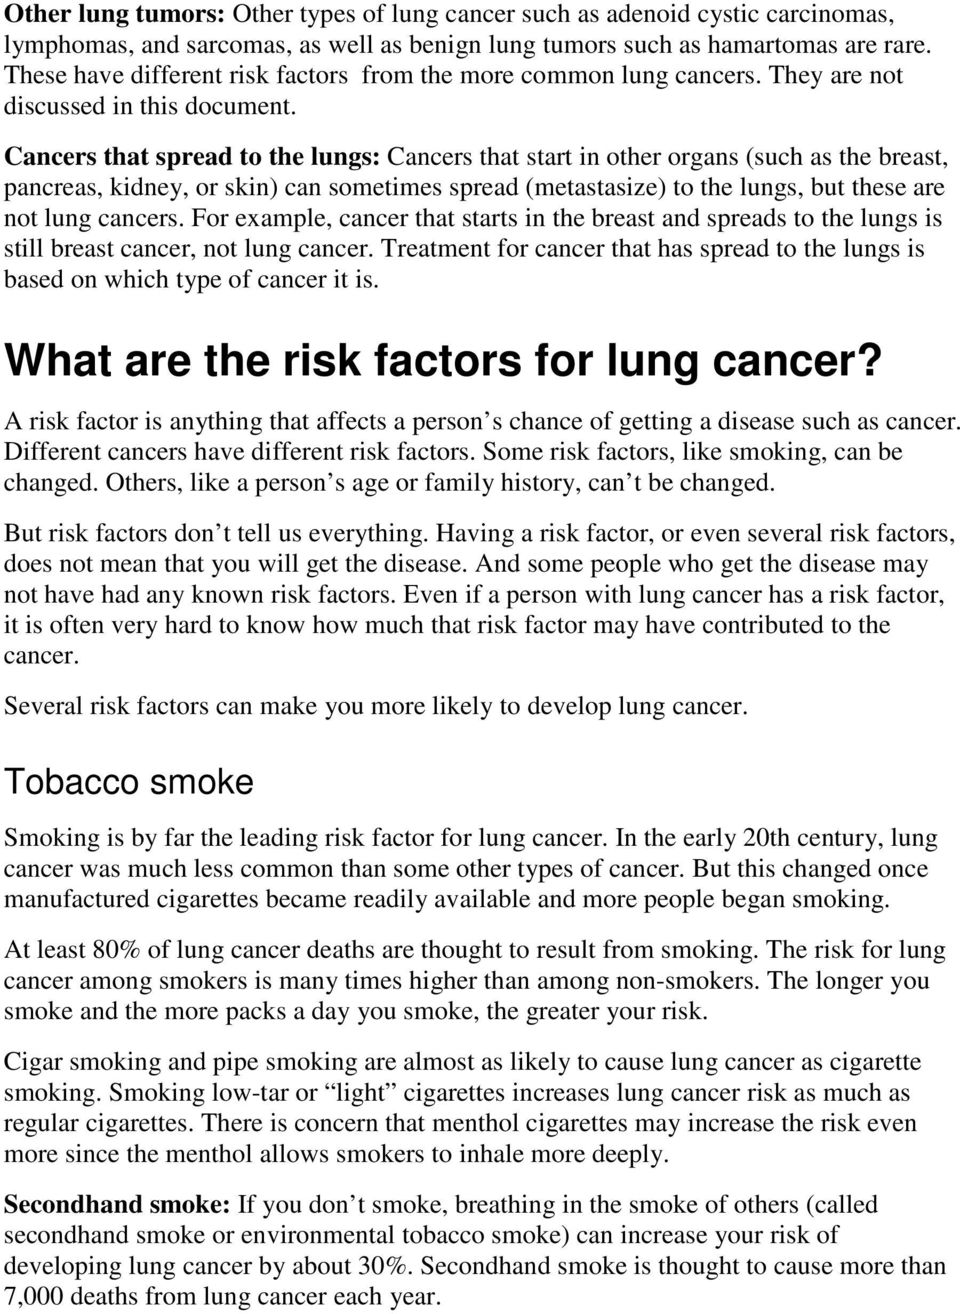 Cancers that spread to the lungs: Cancers that start in other organs (such as the breast, pancreas, kidney, or skin) can sometimes spread (metastasize) to the lungs, but these are not lung cancers.